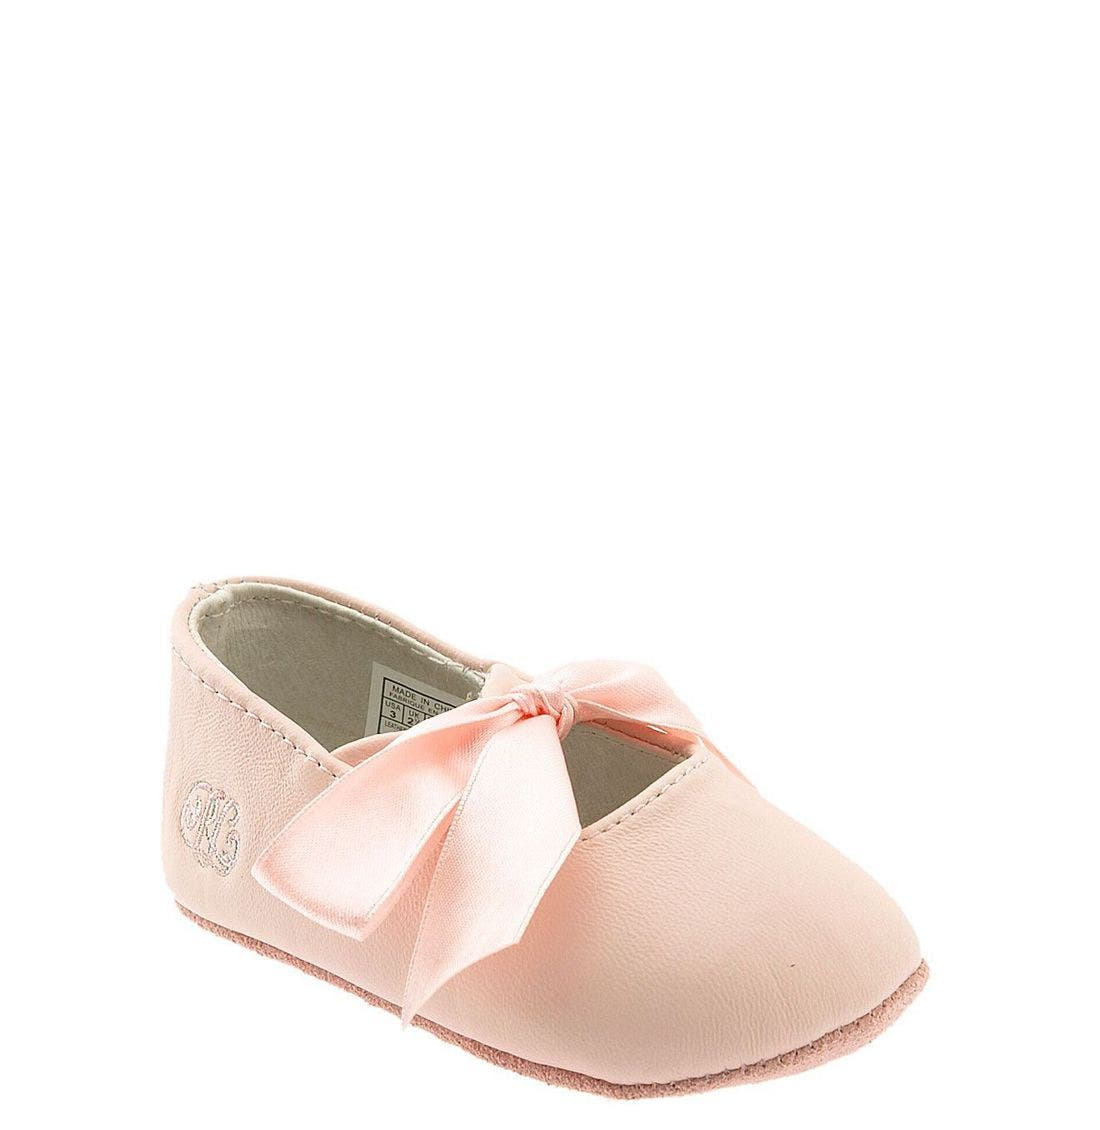 Main Image - Ralph Lauren Layette 'Briley' Shoe (Baby)